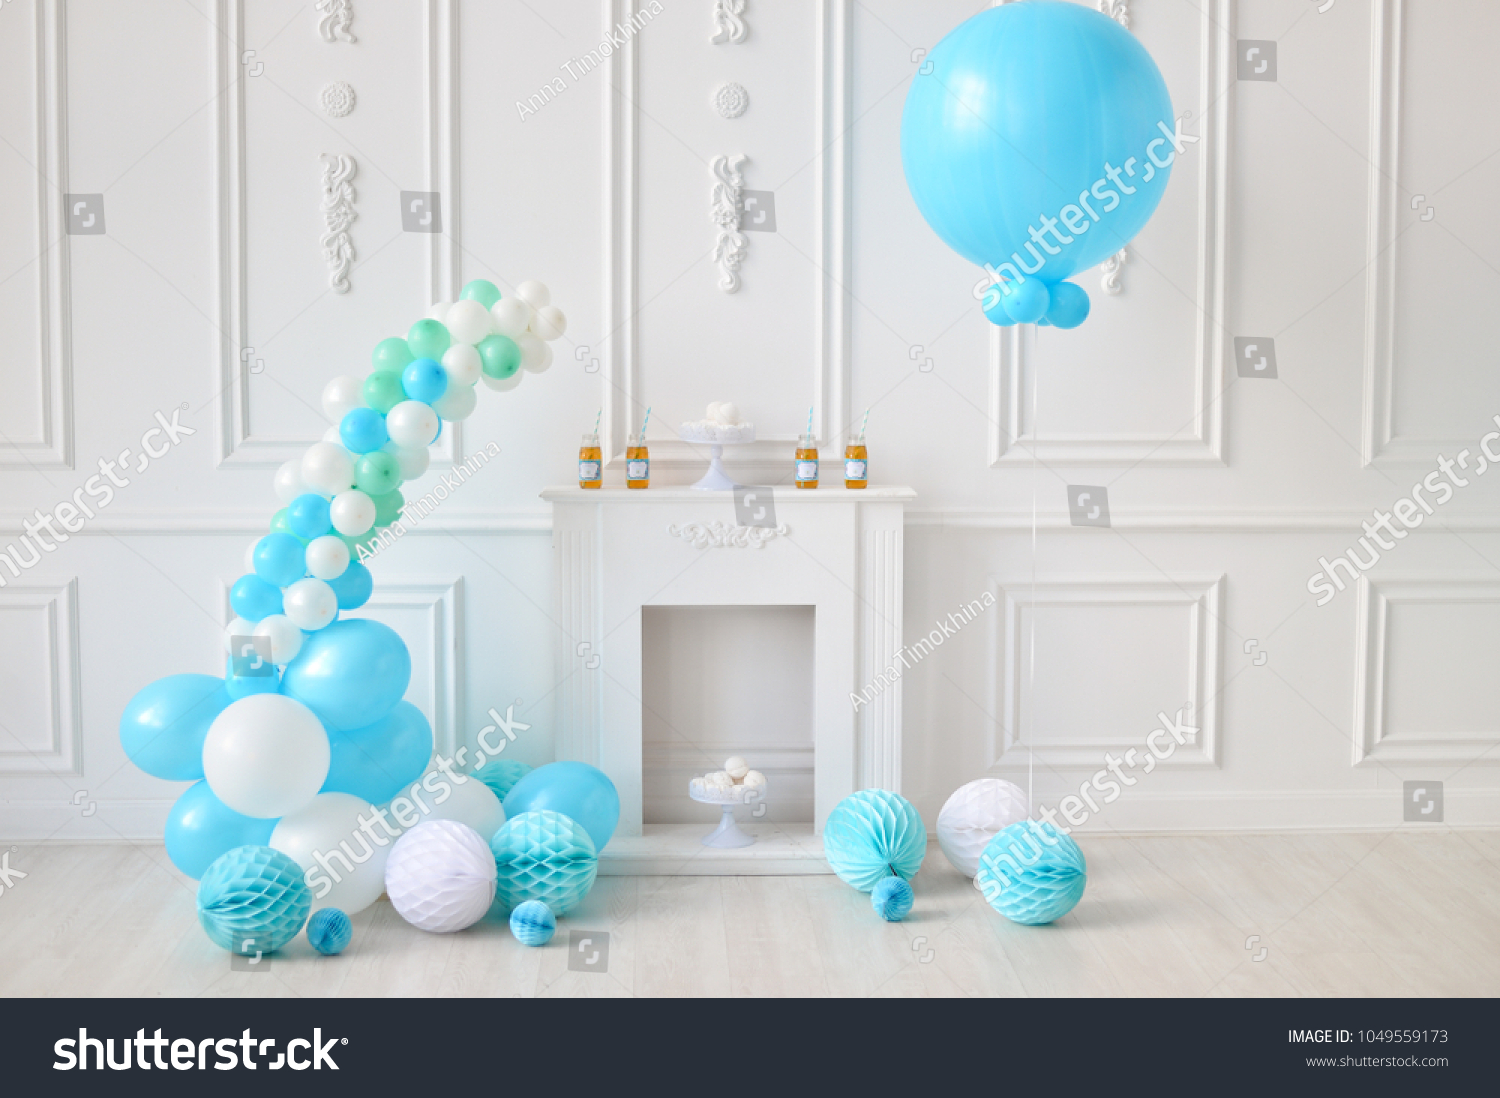 Decorations For Holiday Party Birthday Ideas A Lot Of Balloons Blue And White